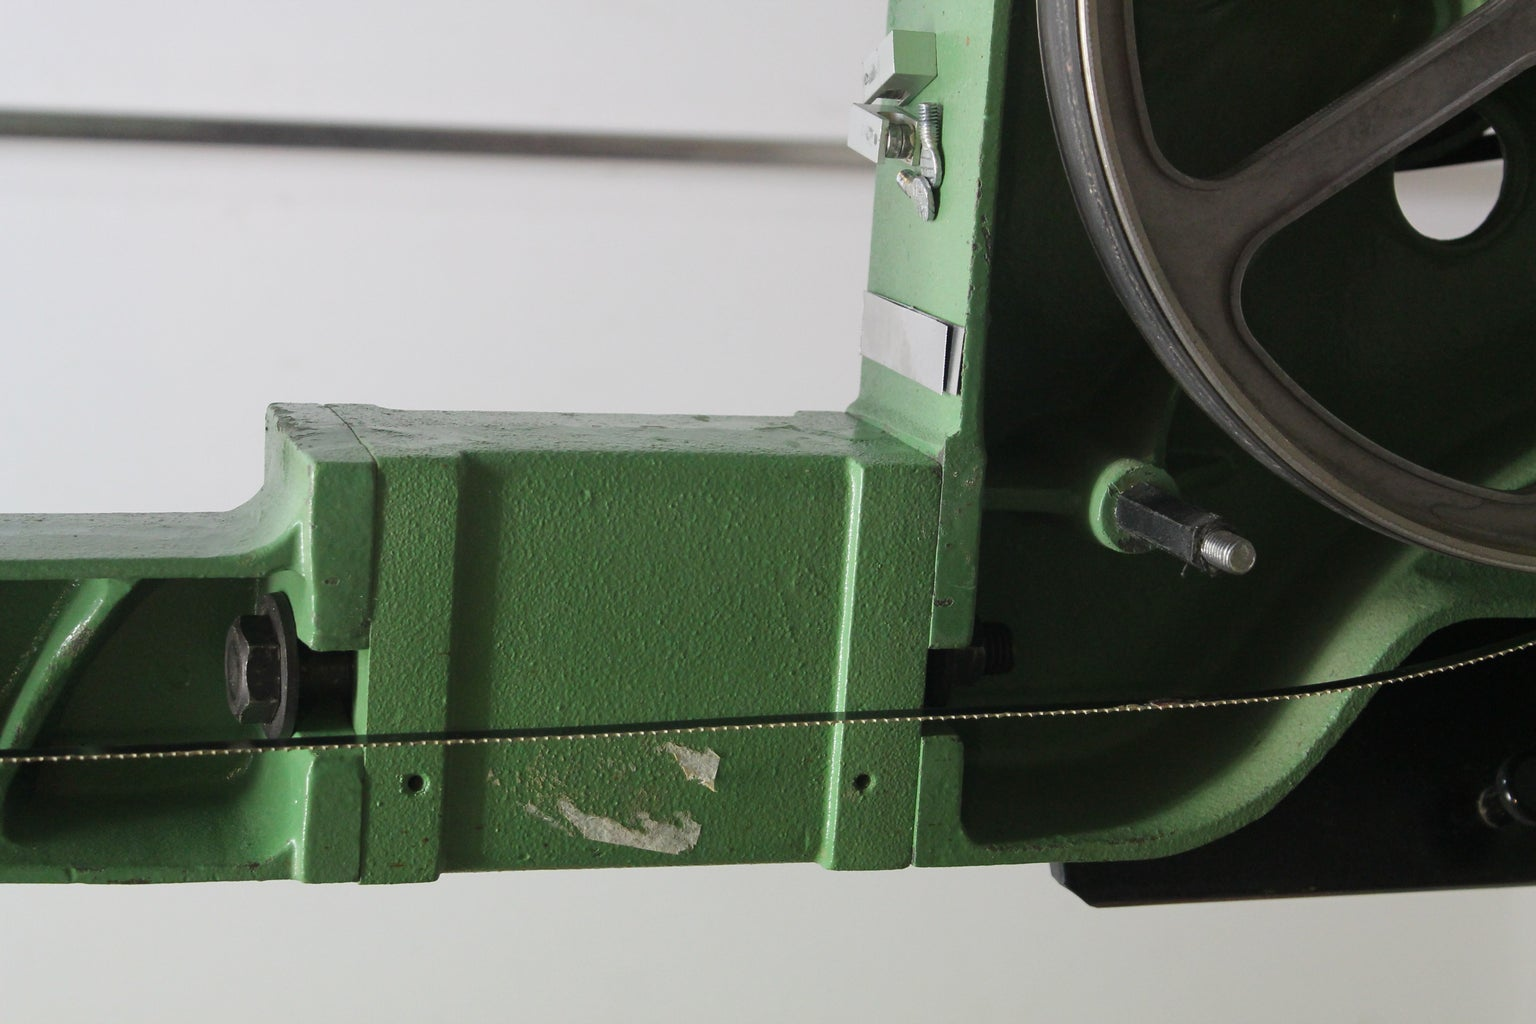 Bastard Problem: Plumb the Guide and Blade